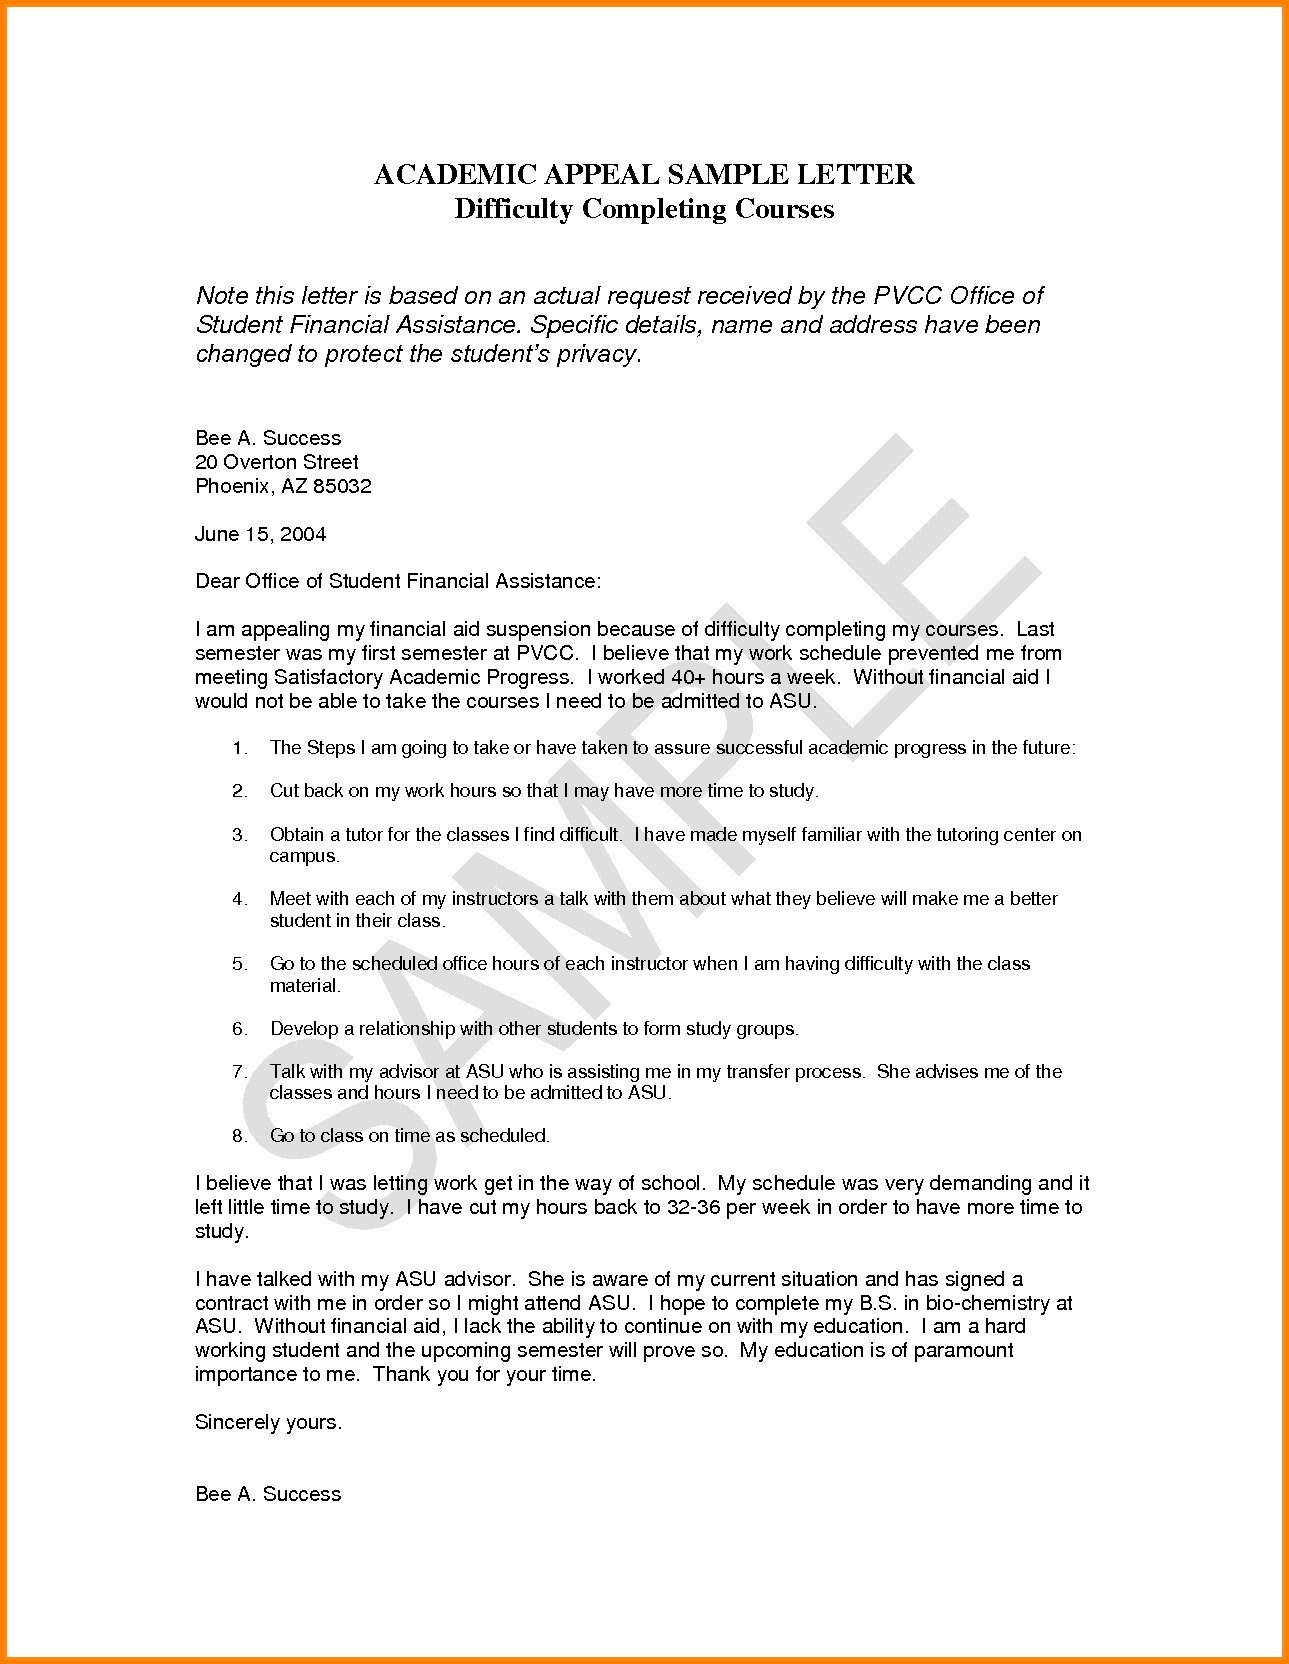 expulsion-appeal-letter-template-1 Sample Expulsion Letter Templates on employee termination, employment termination, professional cover, character reference, resume cover, business proposal, campaign fundraising, for kids, company introduction, university petition, donation request,